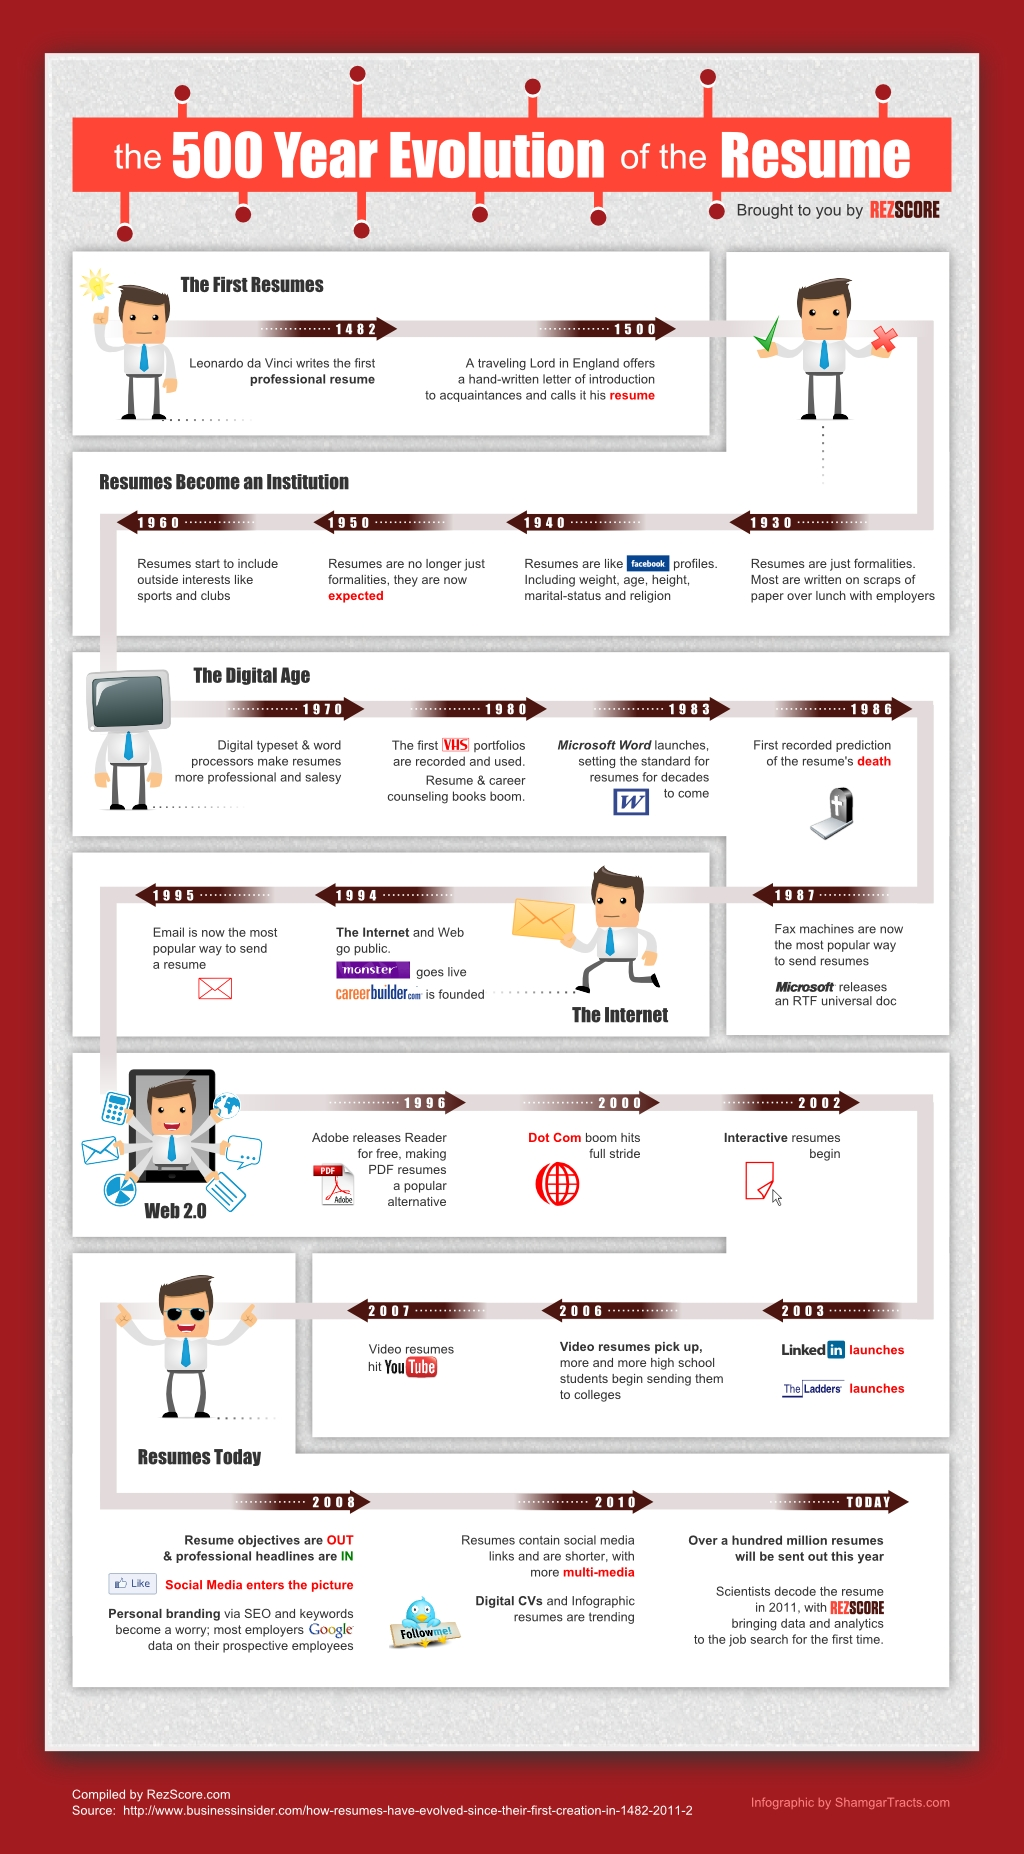 http://rezscore.com/images/upload/RezScore-the-500-year-evolution-of-the-resume.jpg